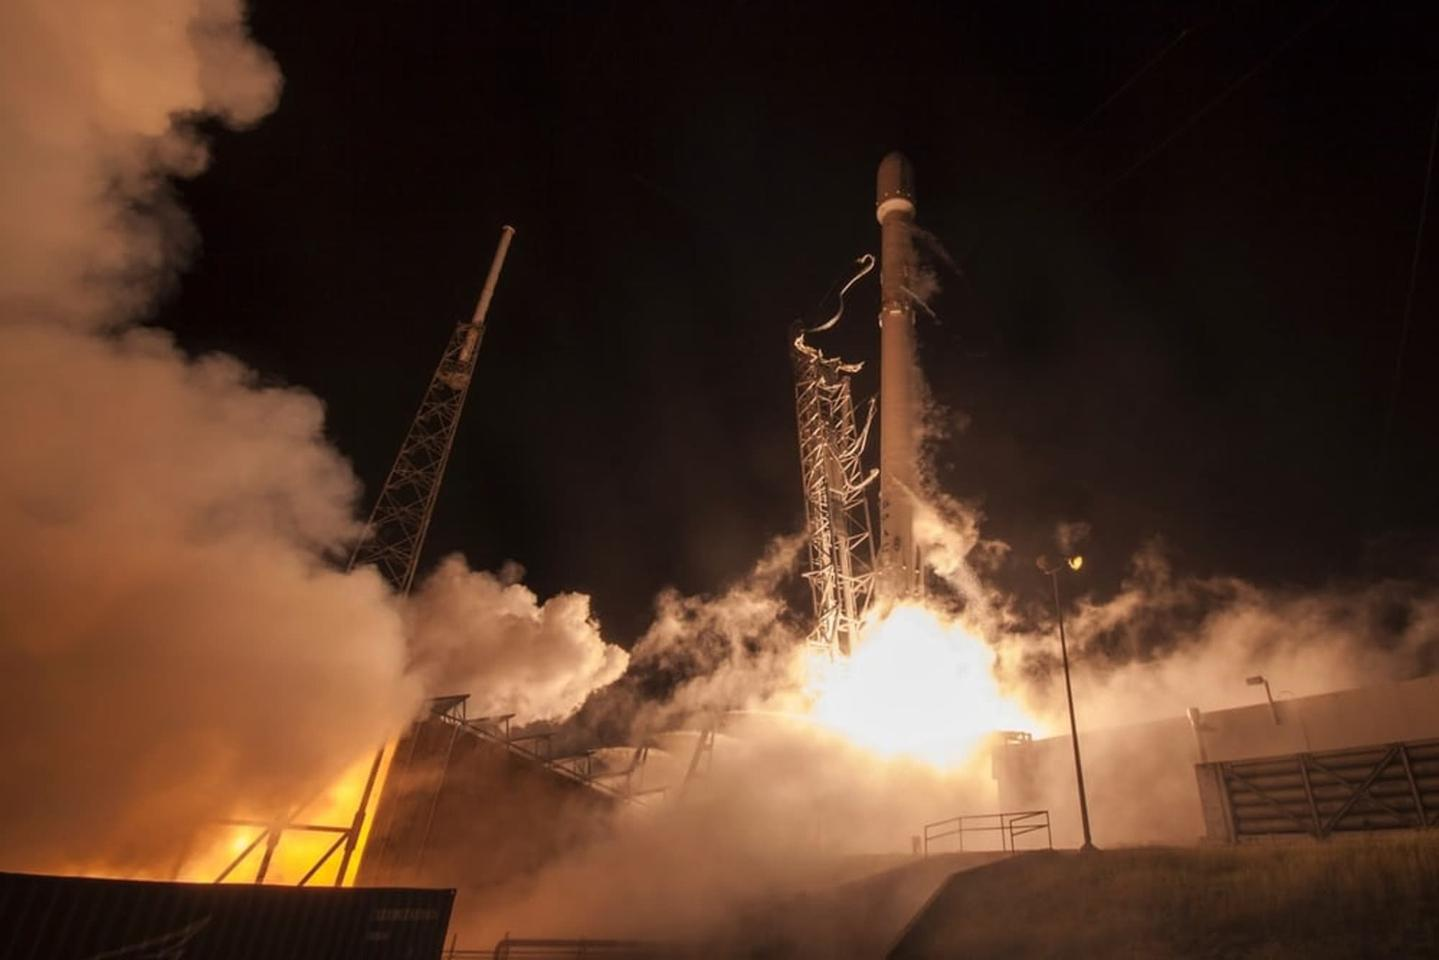 SpaceX's Falcon 9 rockets have been out of action since the September 1 accident